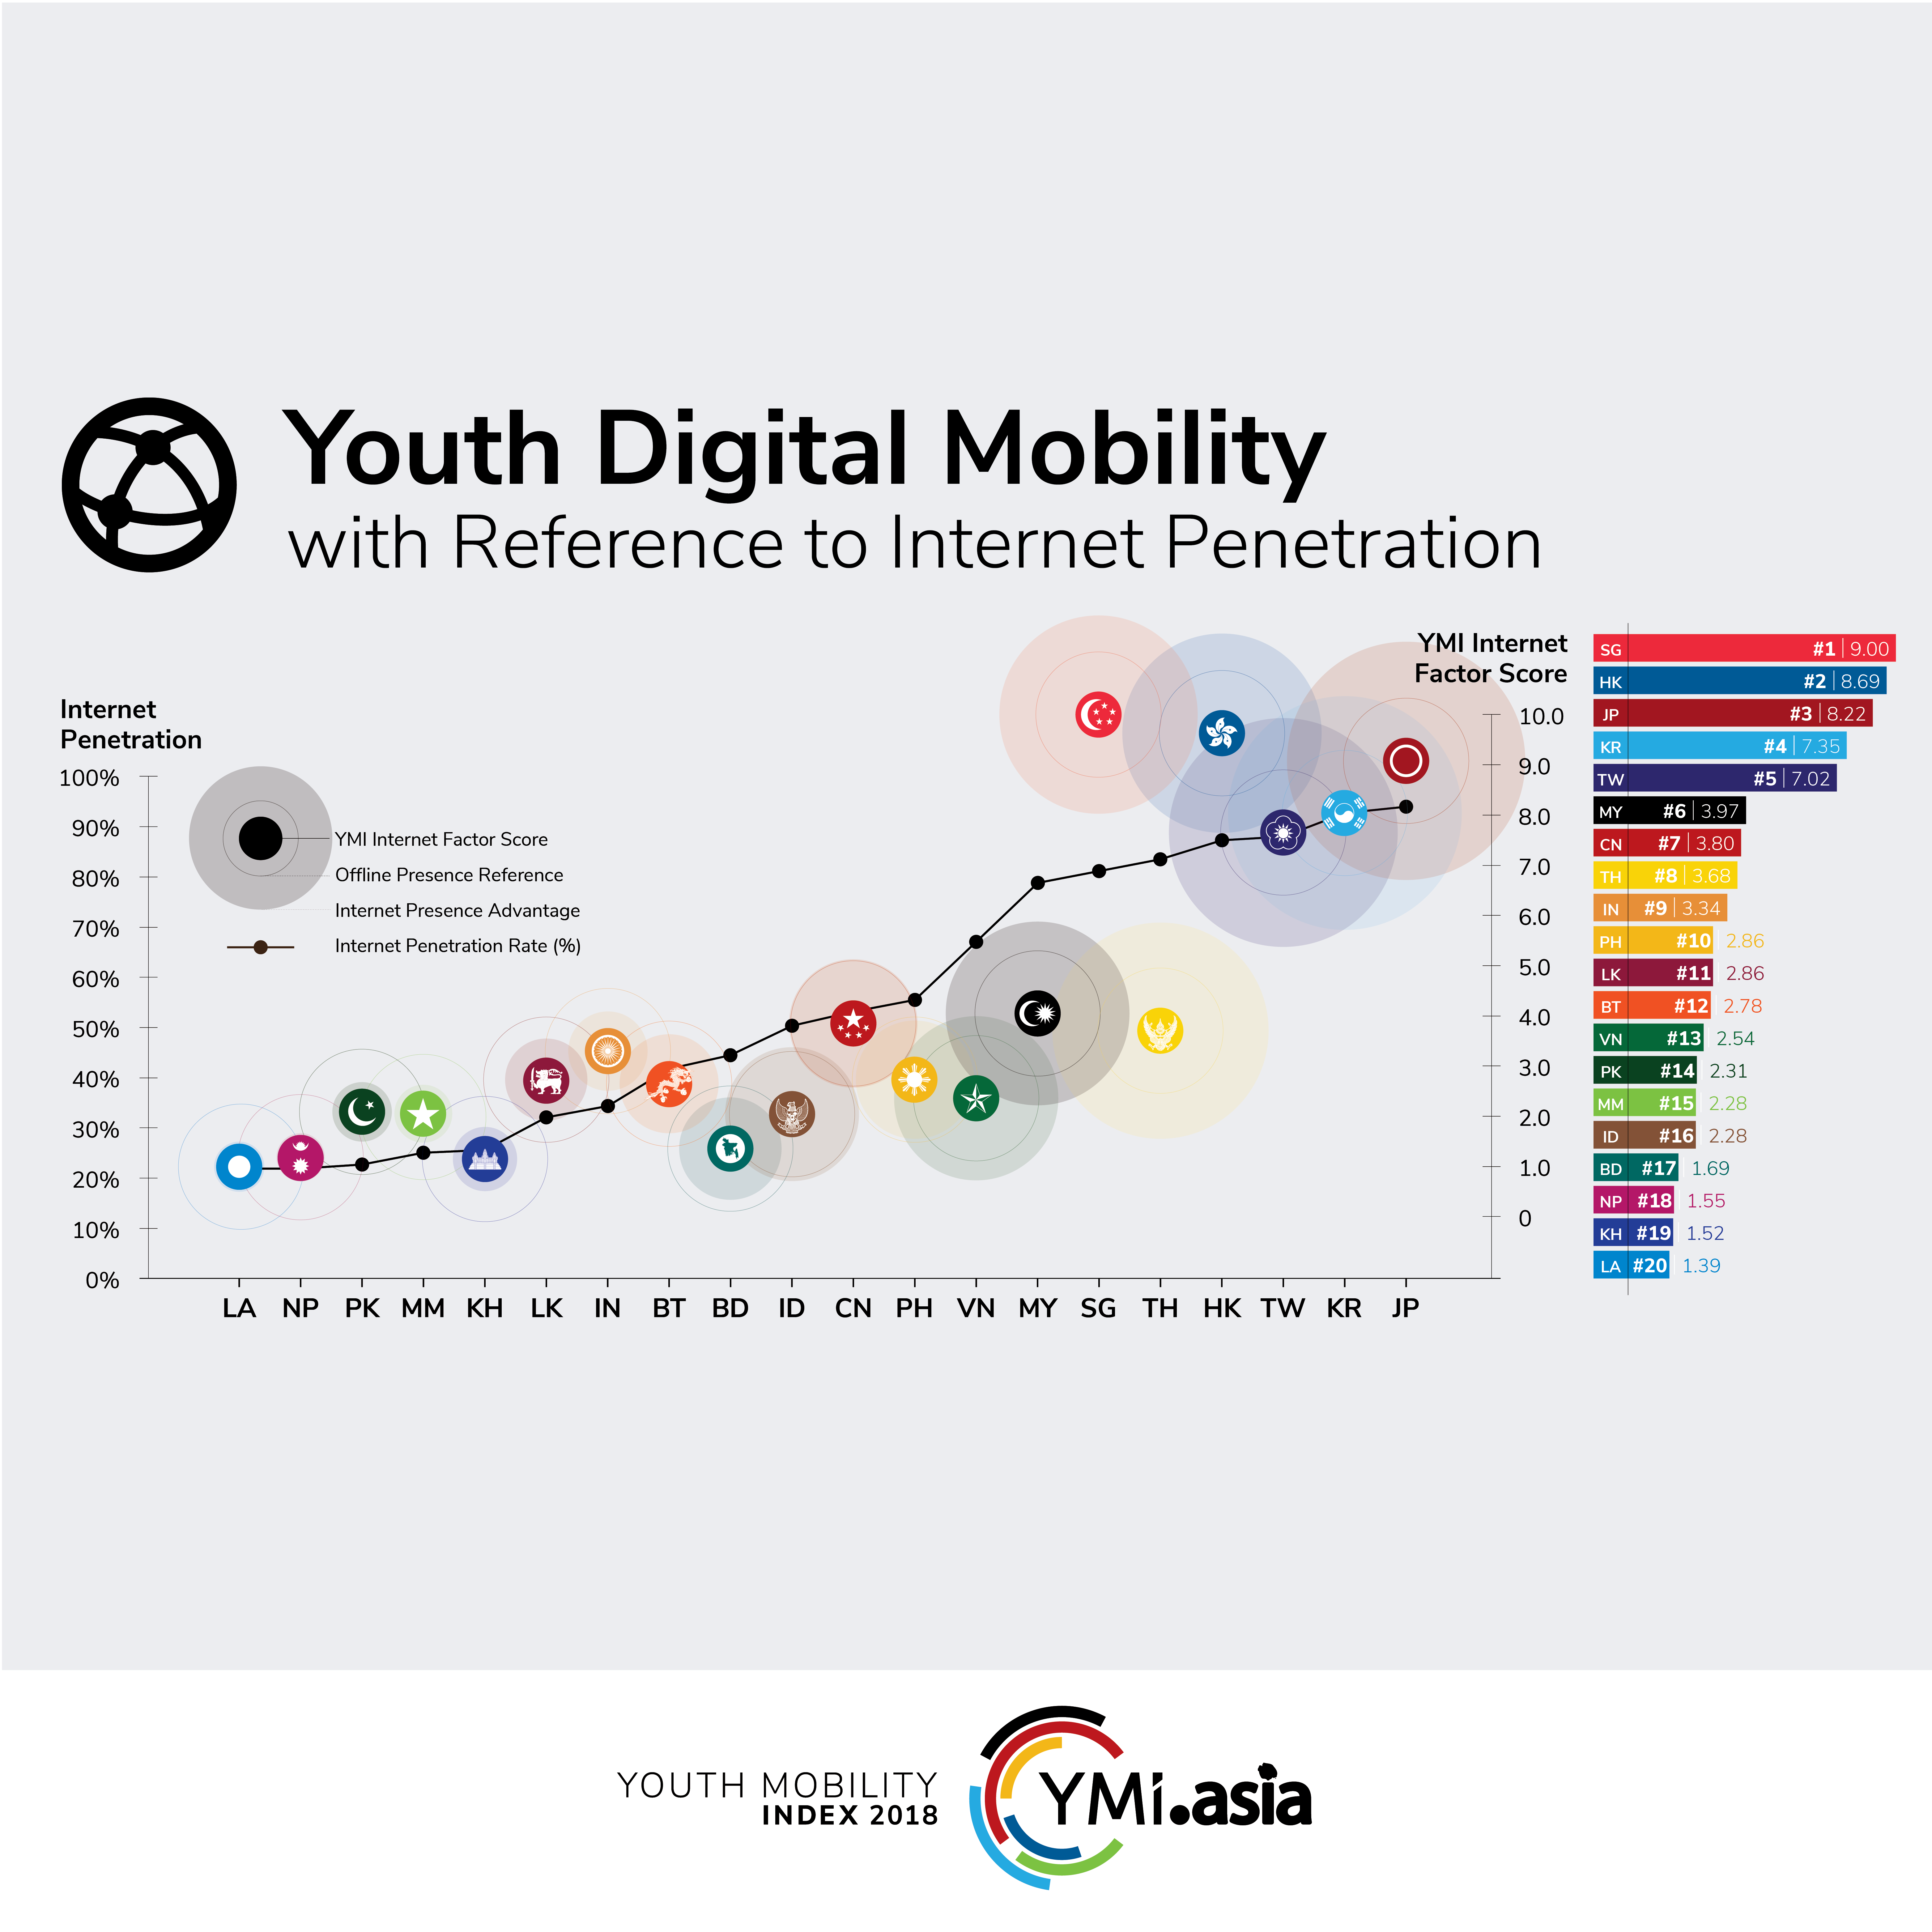 Youth Digital Mobility: Japan, South Korea and Taiwan tops the Internet penetration rate across 20 Asian localities